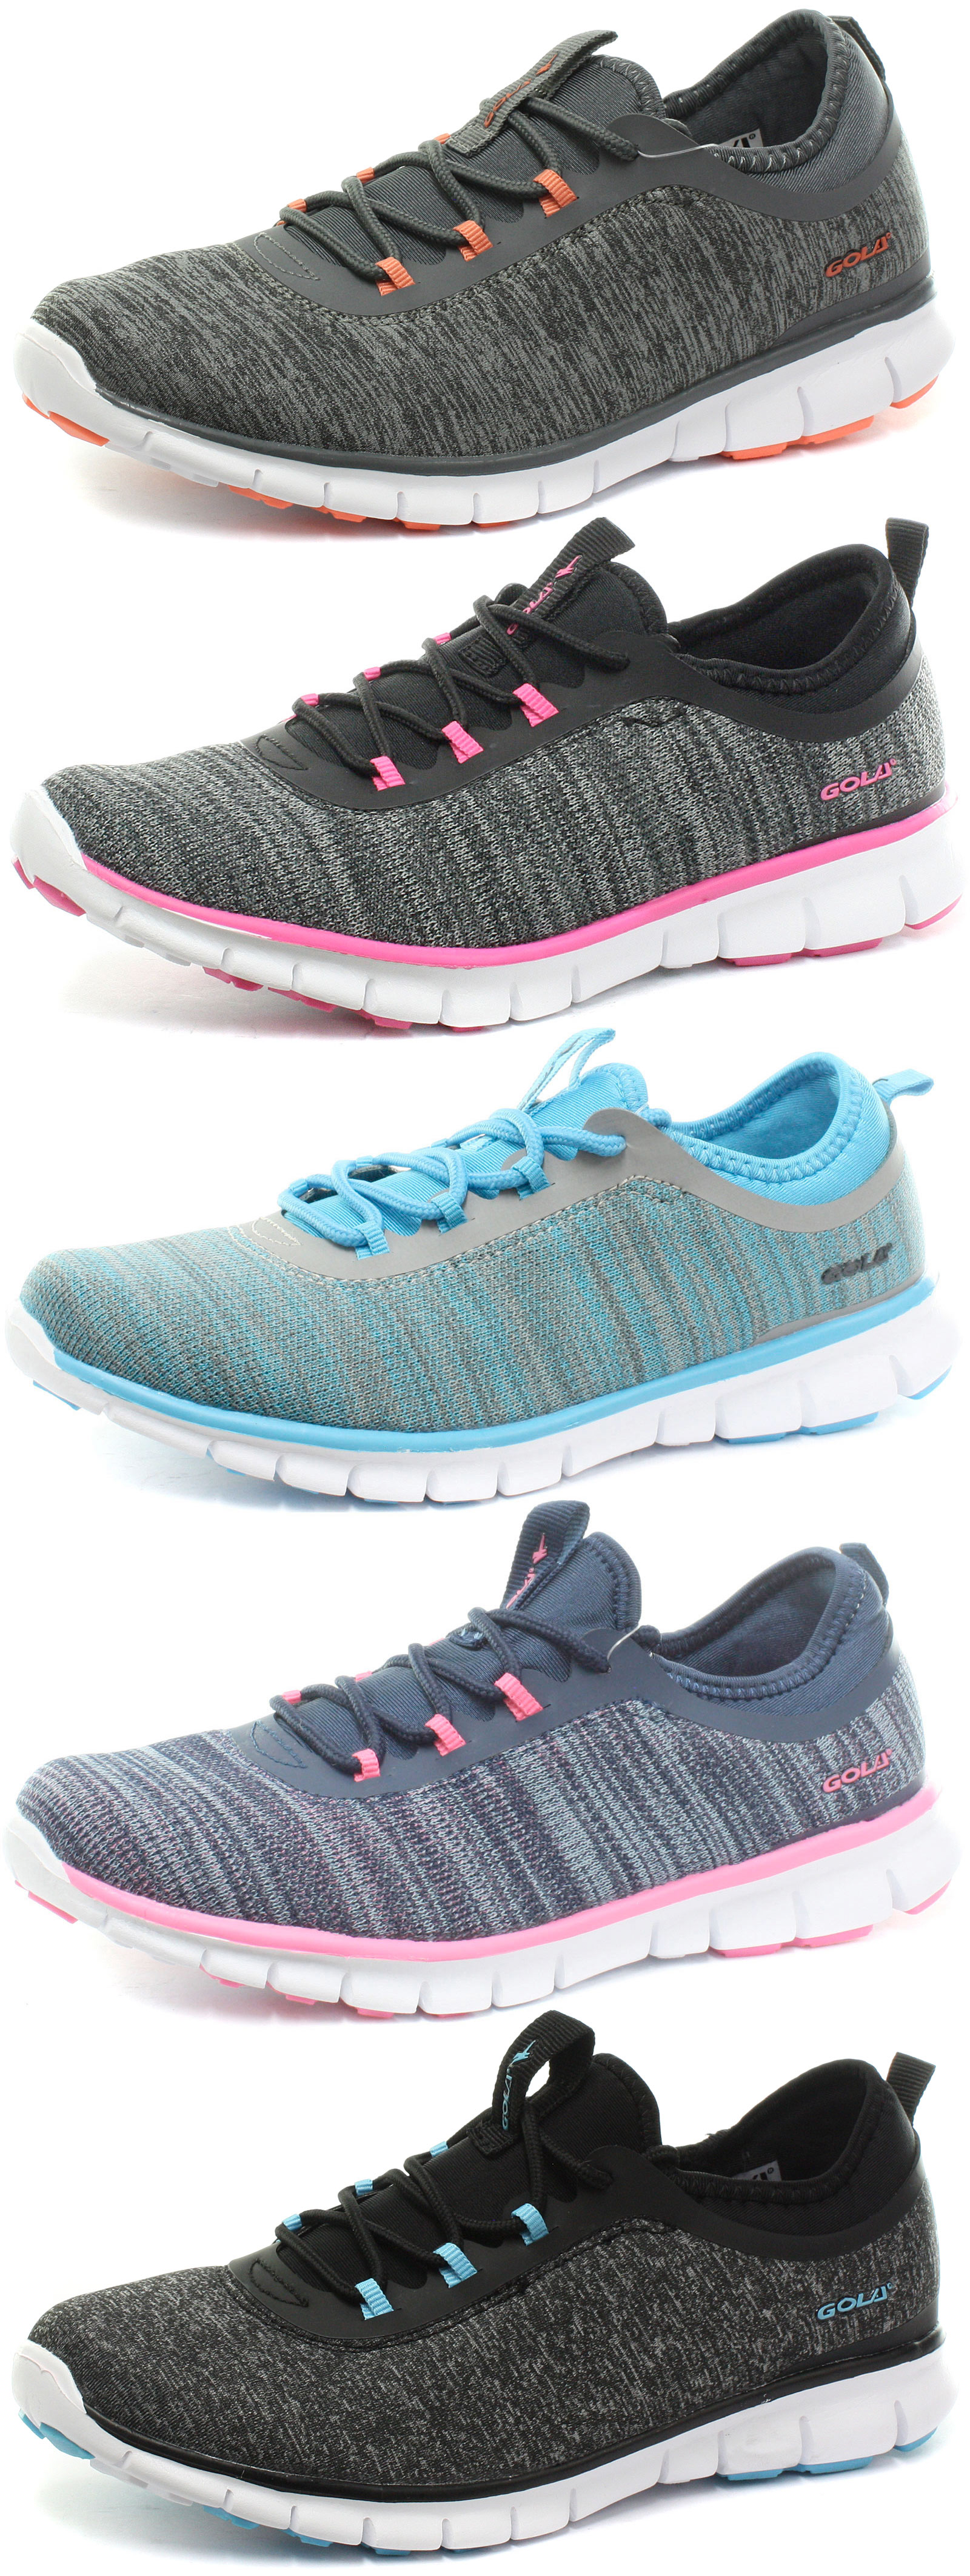 New Gola Active Lovana Womens Trainers ALL SIZES AND COLOURS